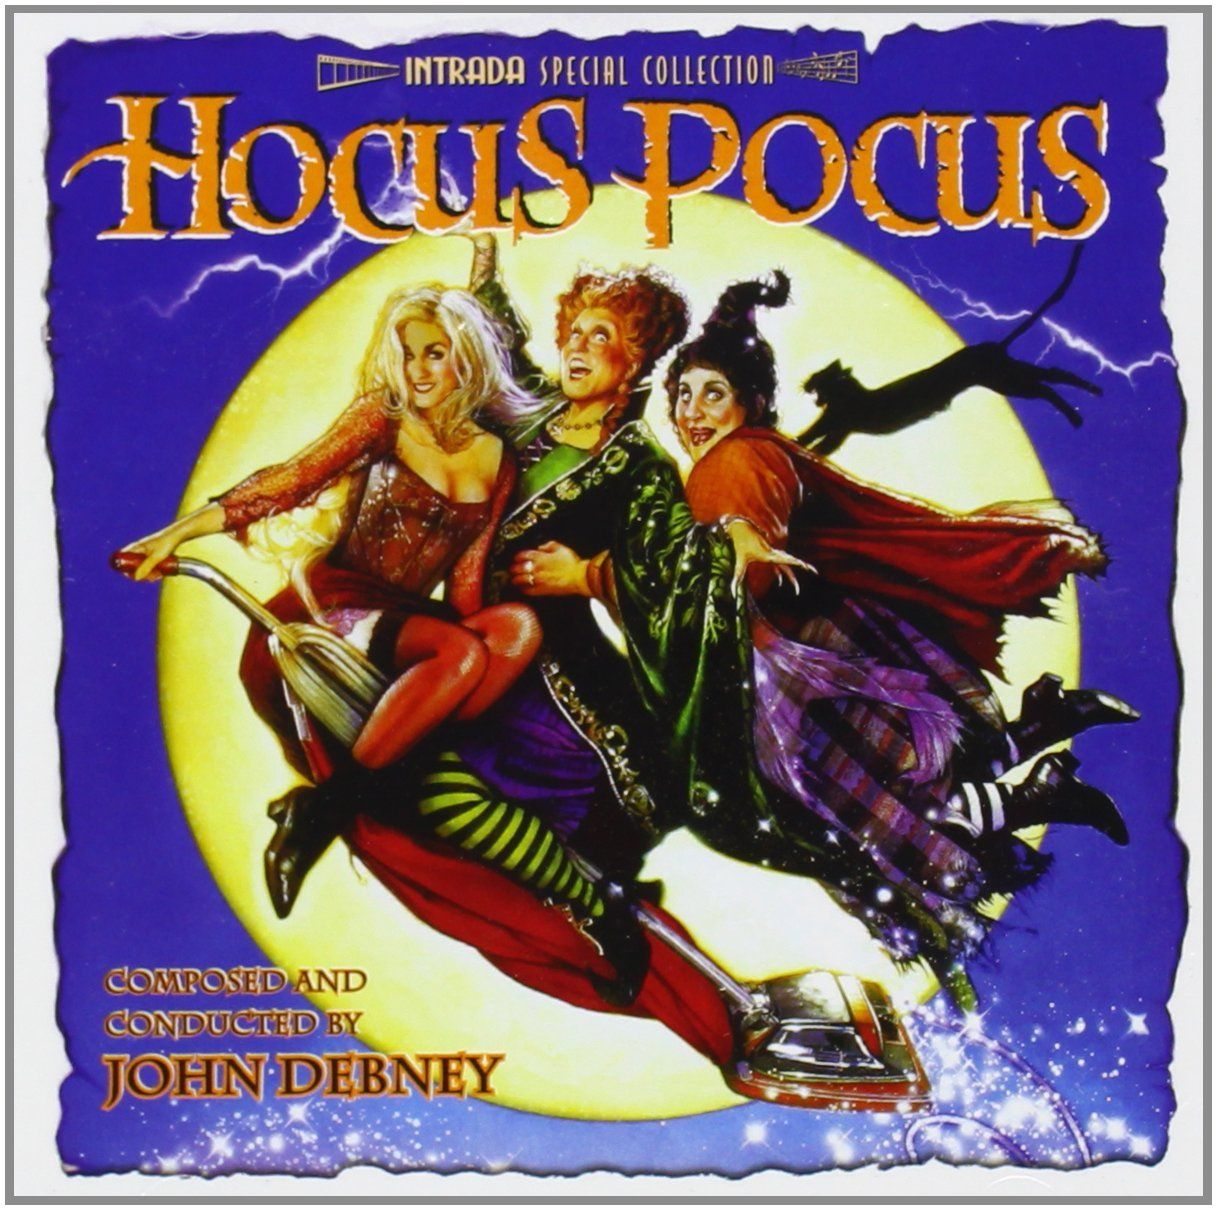 Halloween 2020 Original Motion Picture Soundtrack Hocus Pocus Original Motion Picture Soundtrack by John Debney. If